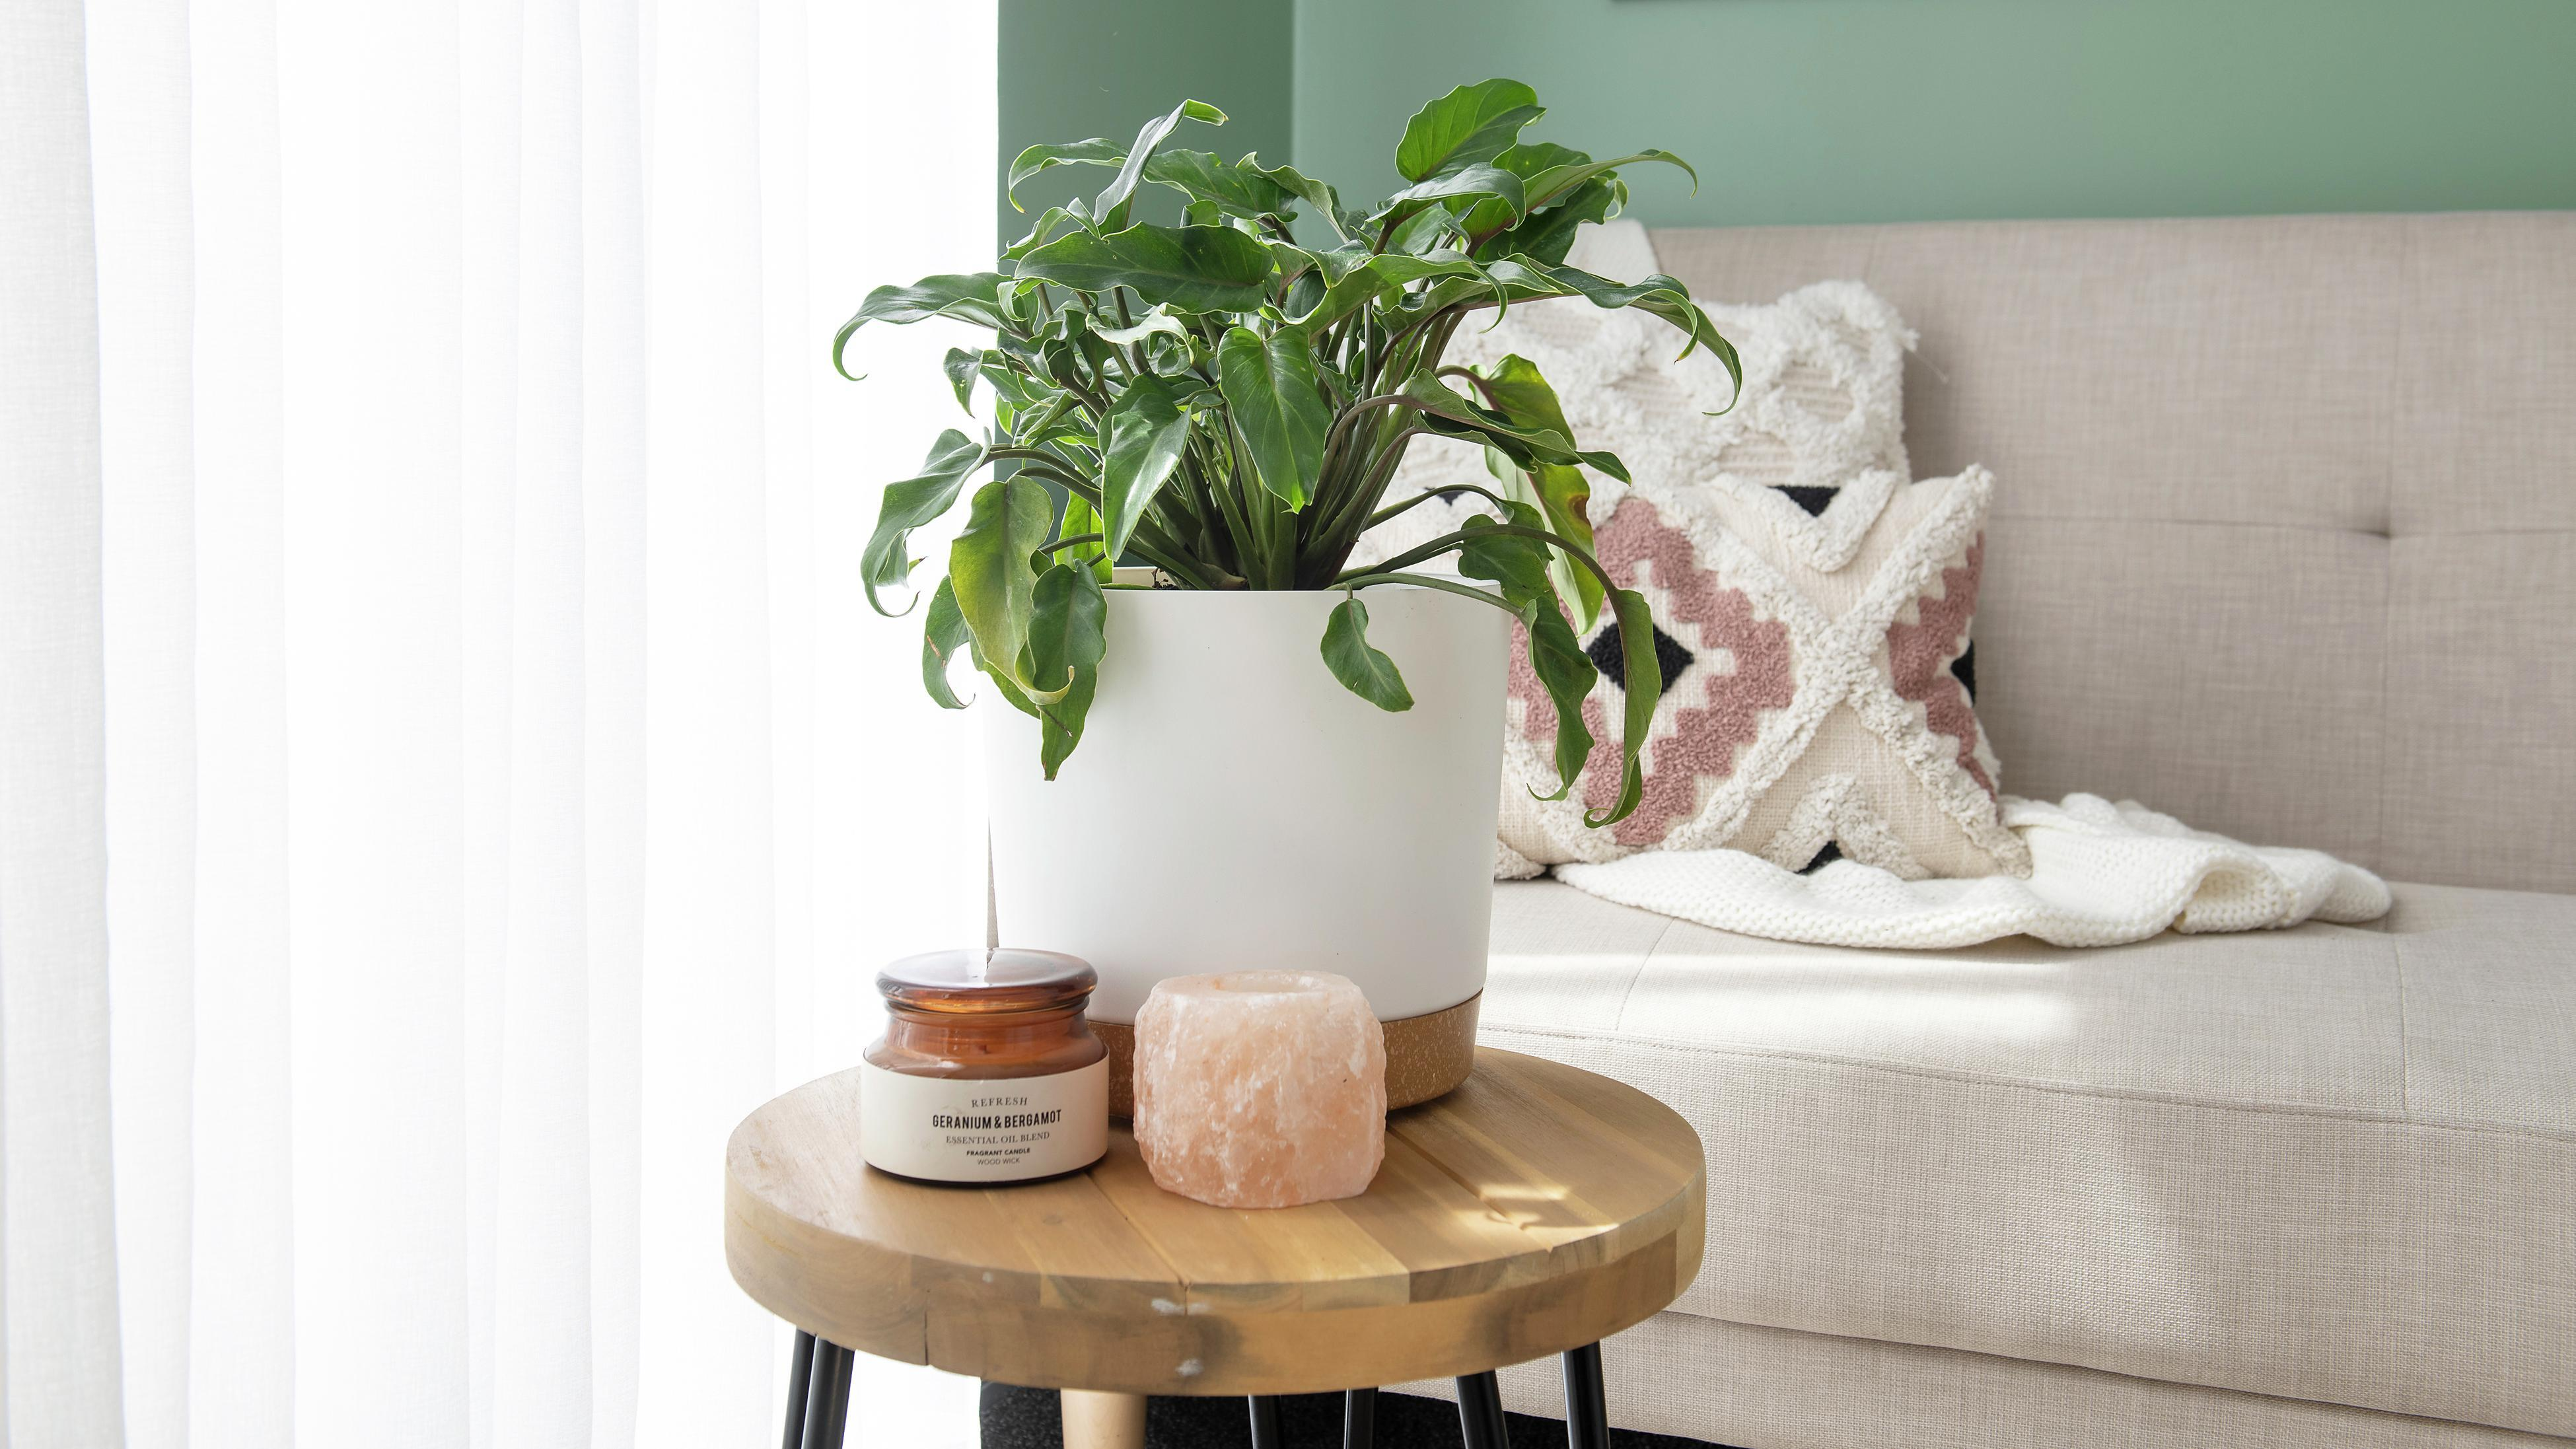 The Philodendron plant in a white pot.